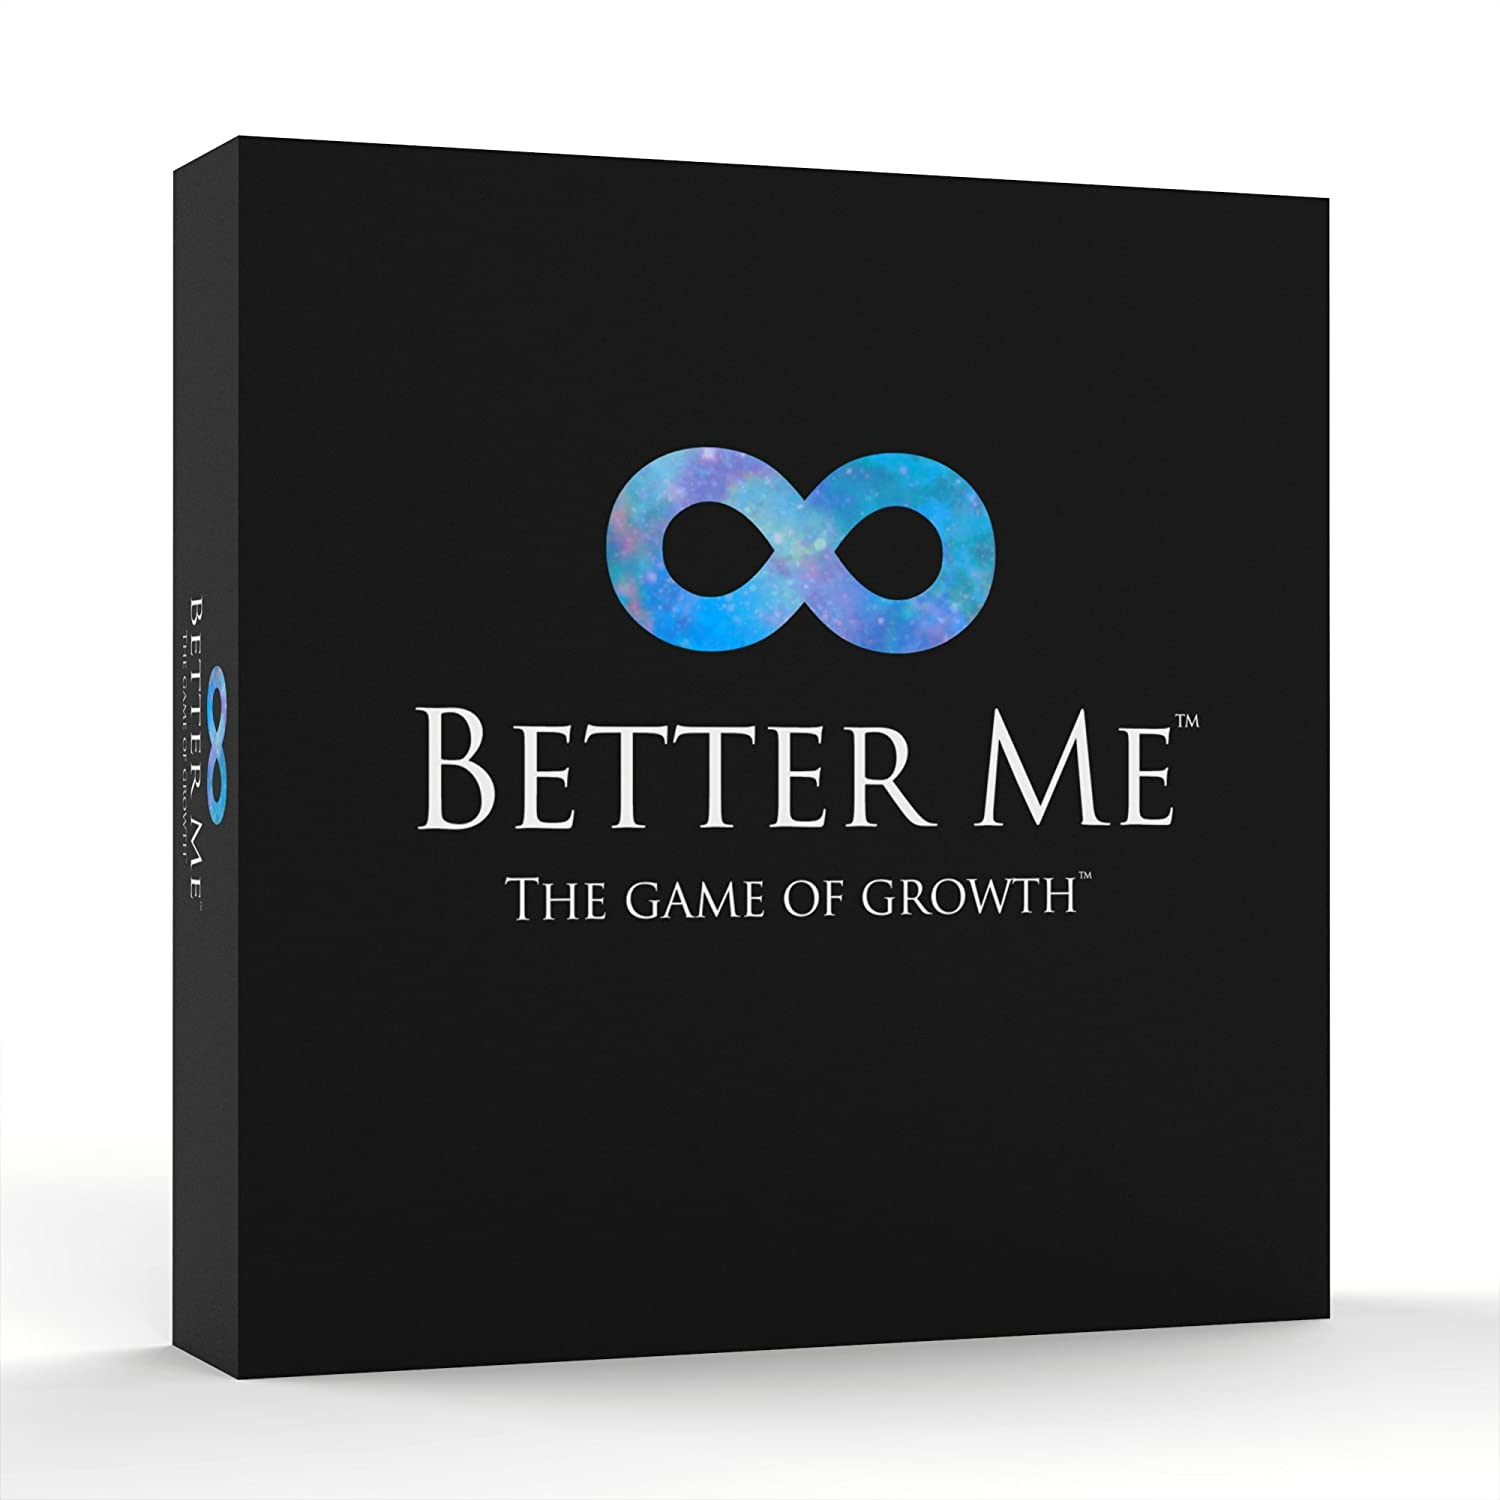 en venta en línea Better Me - The Juego of Growth and and and Friendship Fun Self Improvement Party Juego with Friends and Family. For Personal Development and Better Relationships. Also Useful for Therapy and Counseling.  Entrega directa y rápida de fábrica